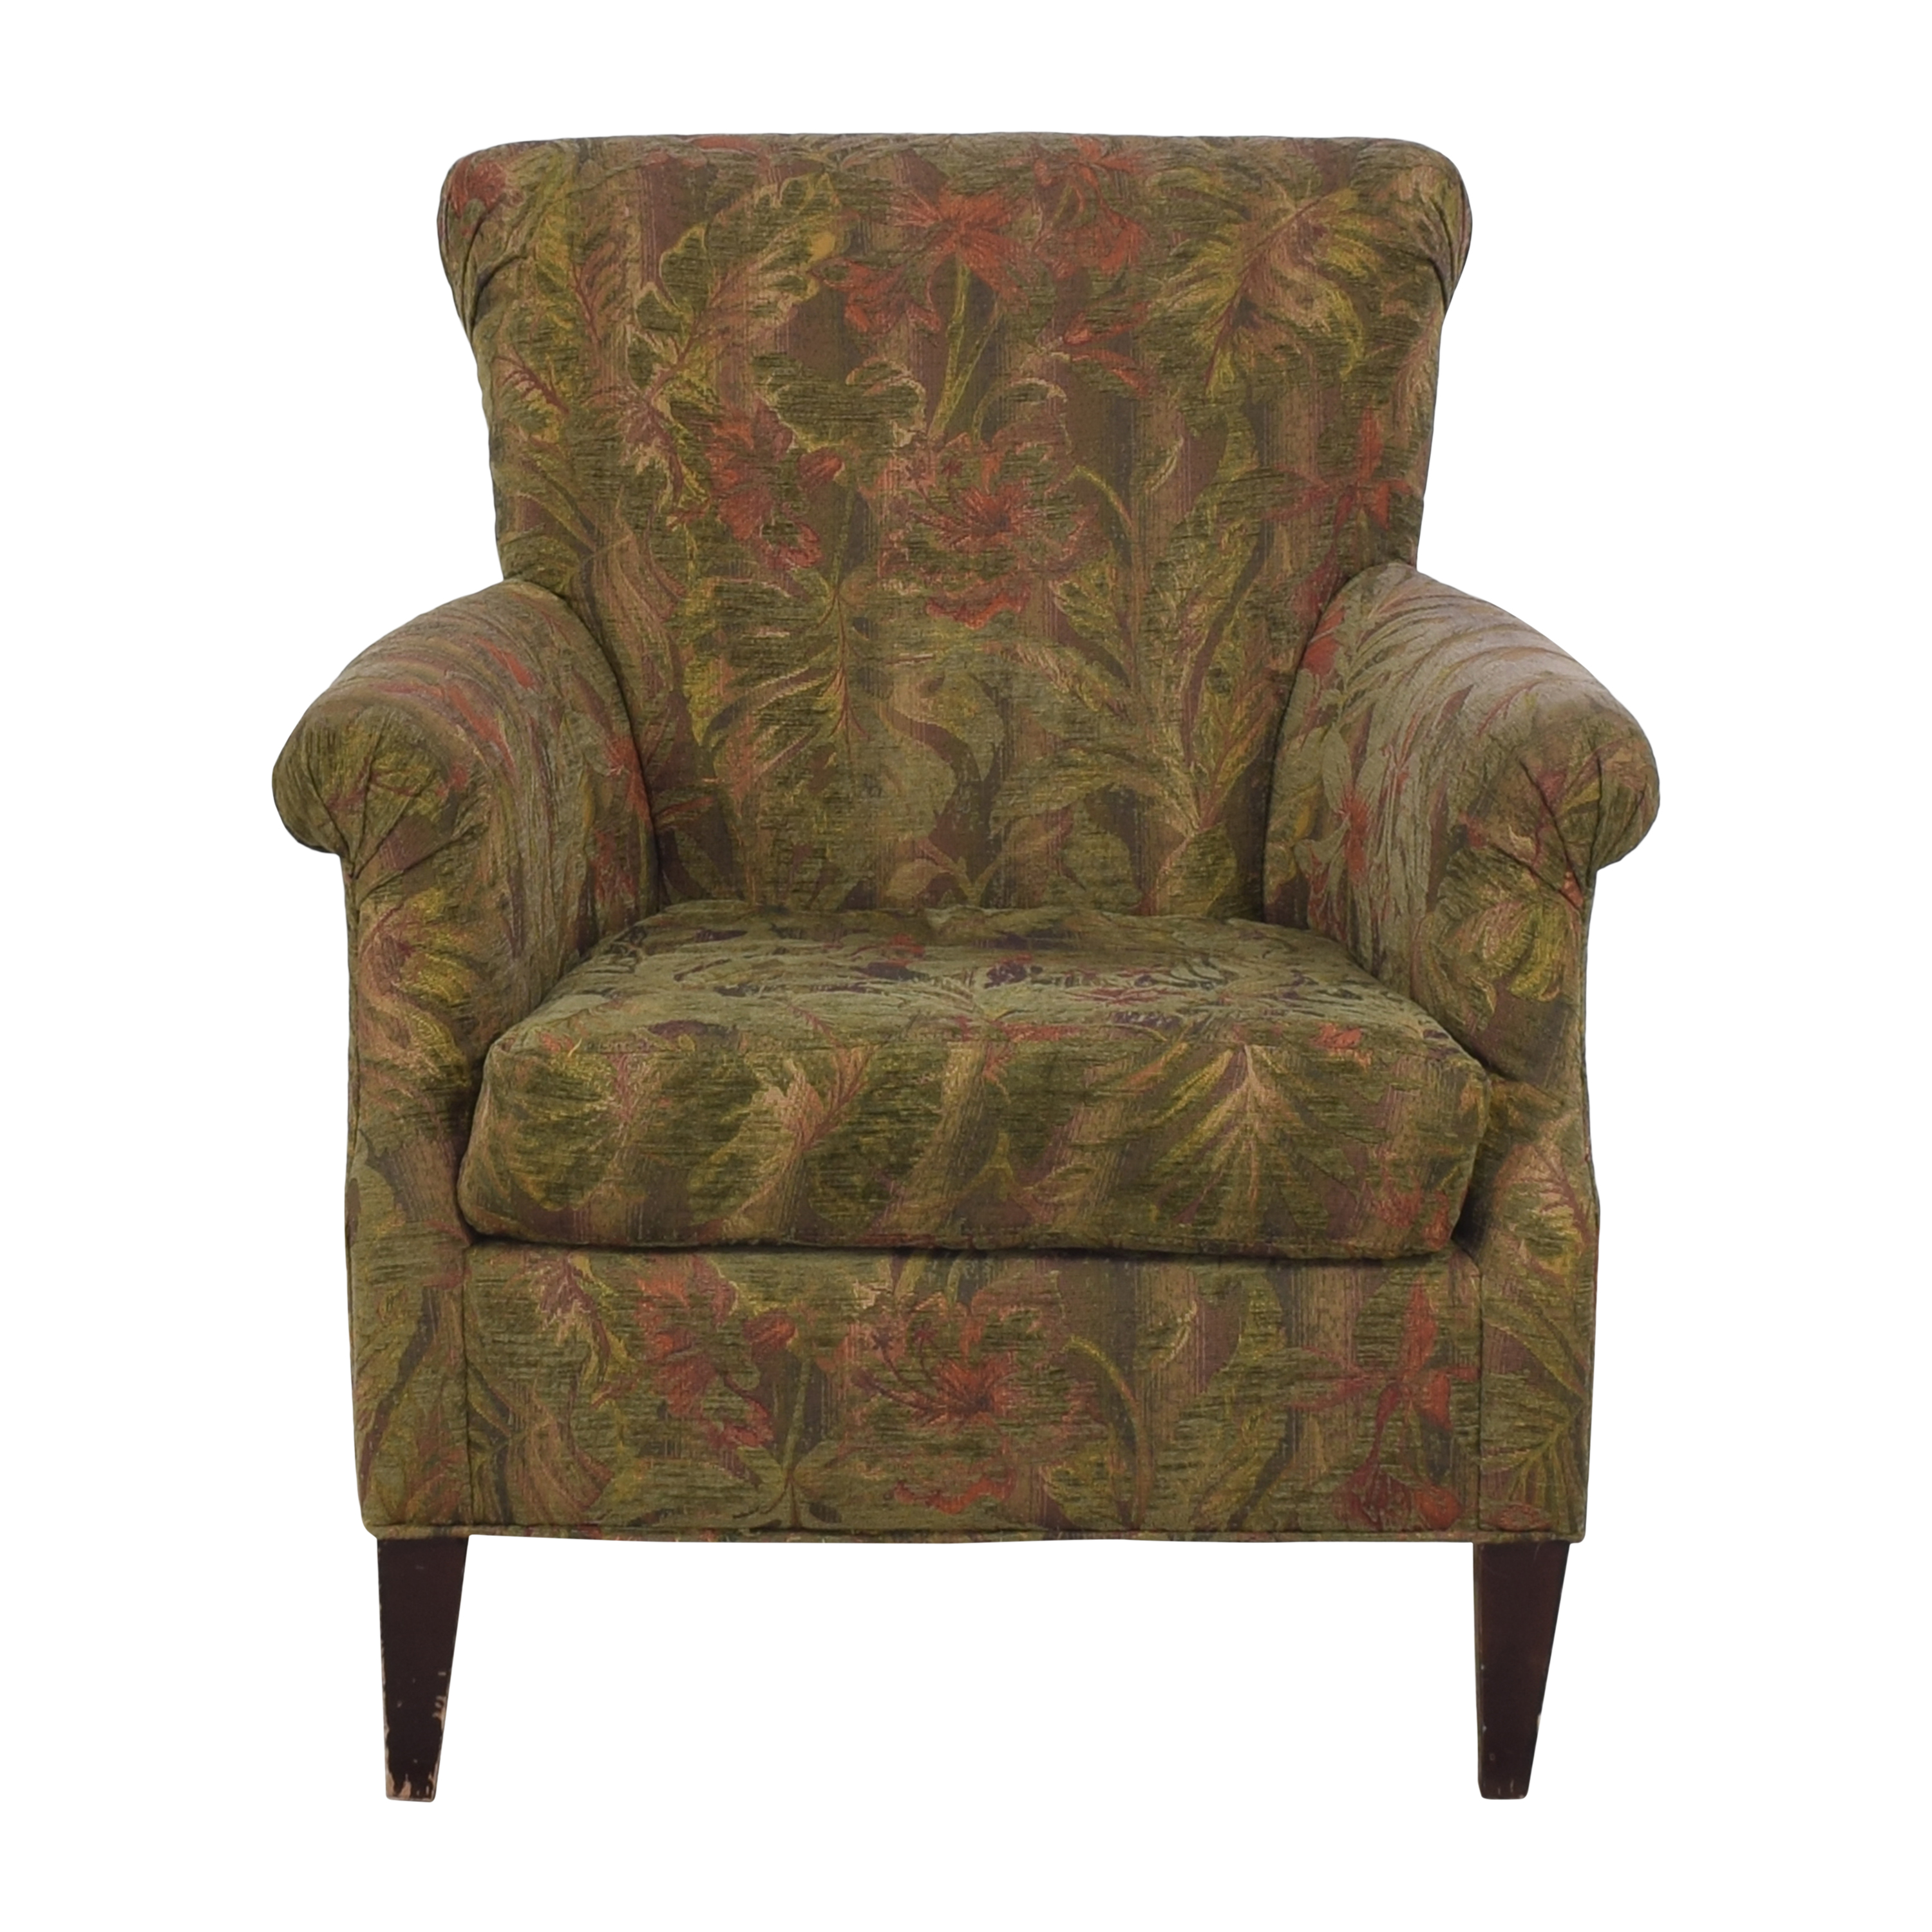 shop Crate & Barrel Wing Back Accent Chair Crate & Barrel Chairs